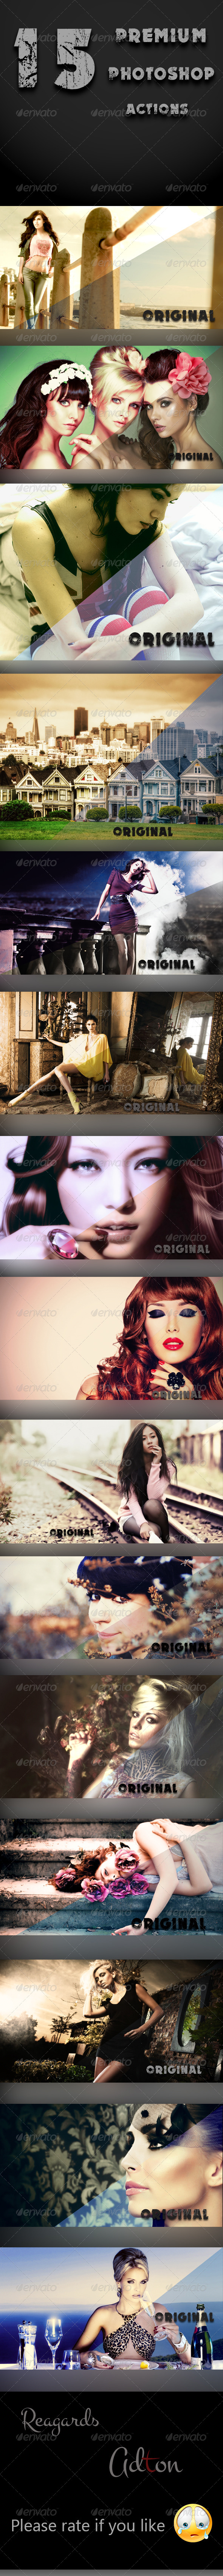 GraphicRiver 15 Premium Photoshop Actions 8524657